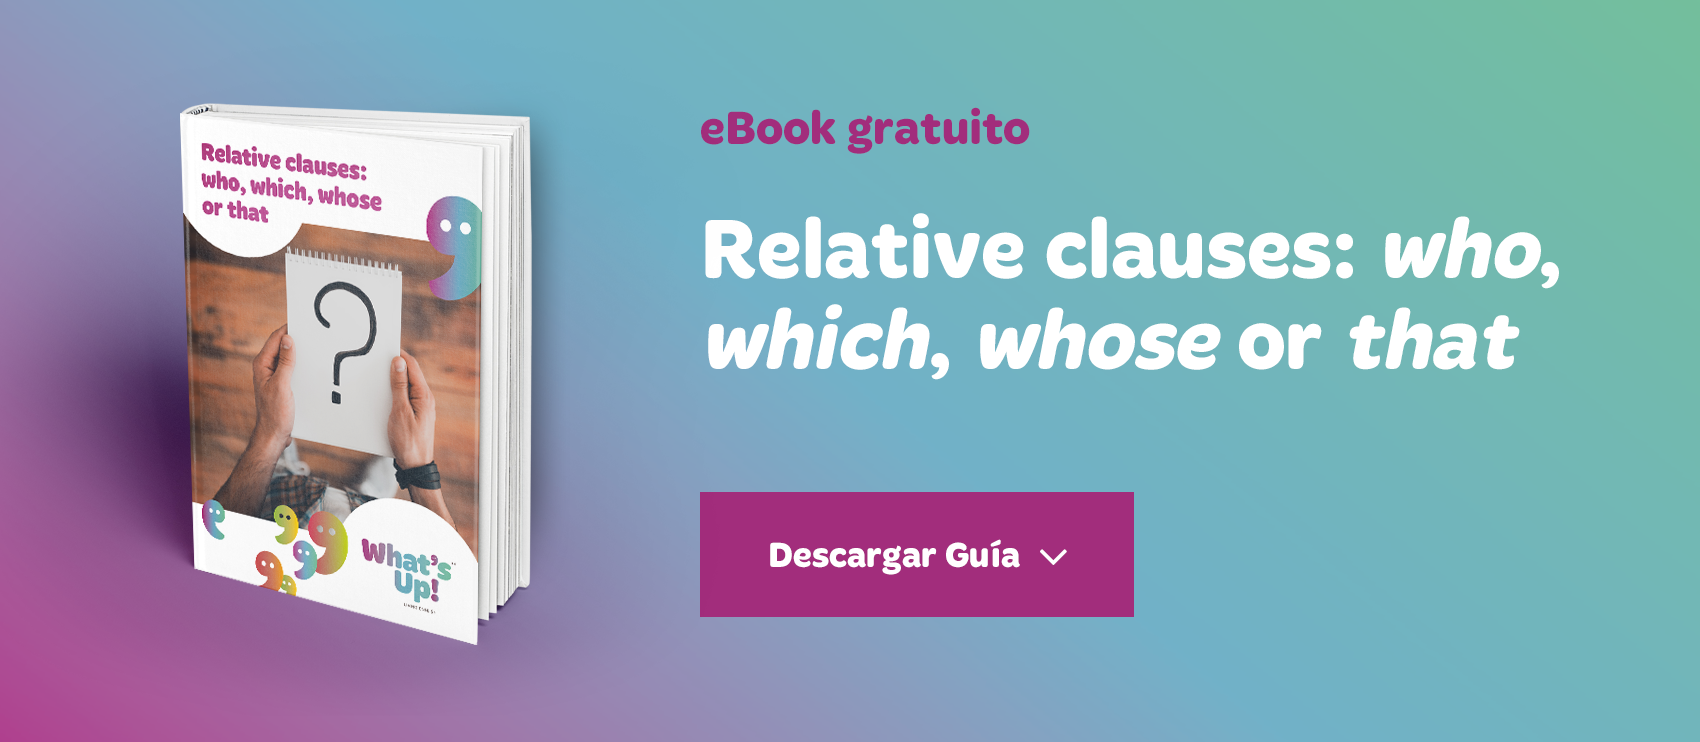 Ebook gratuito Relative clauses: who, which, whose or that?